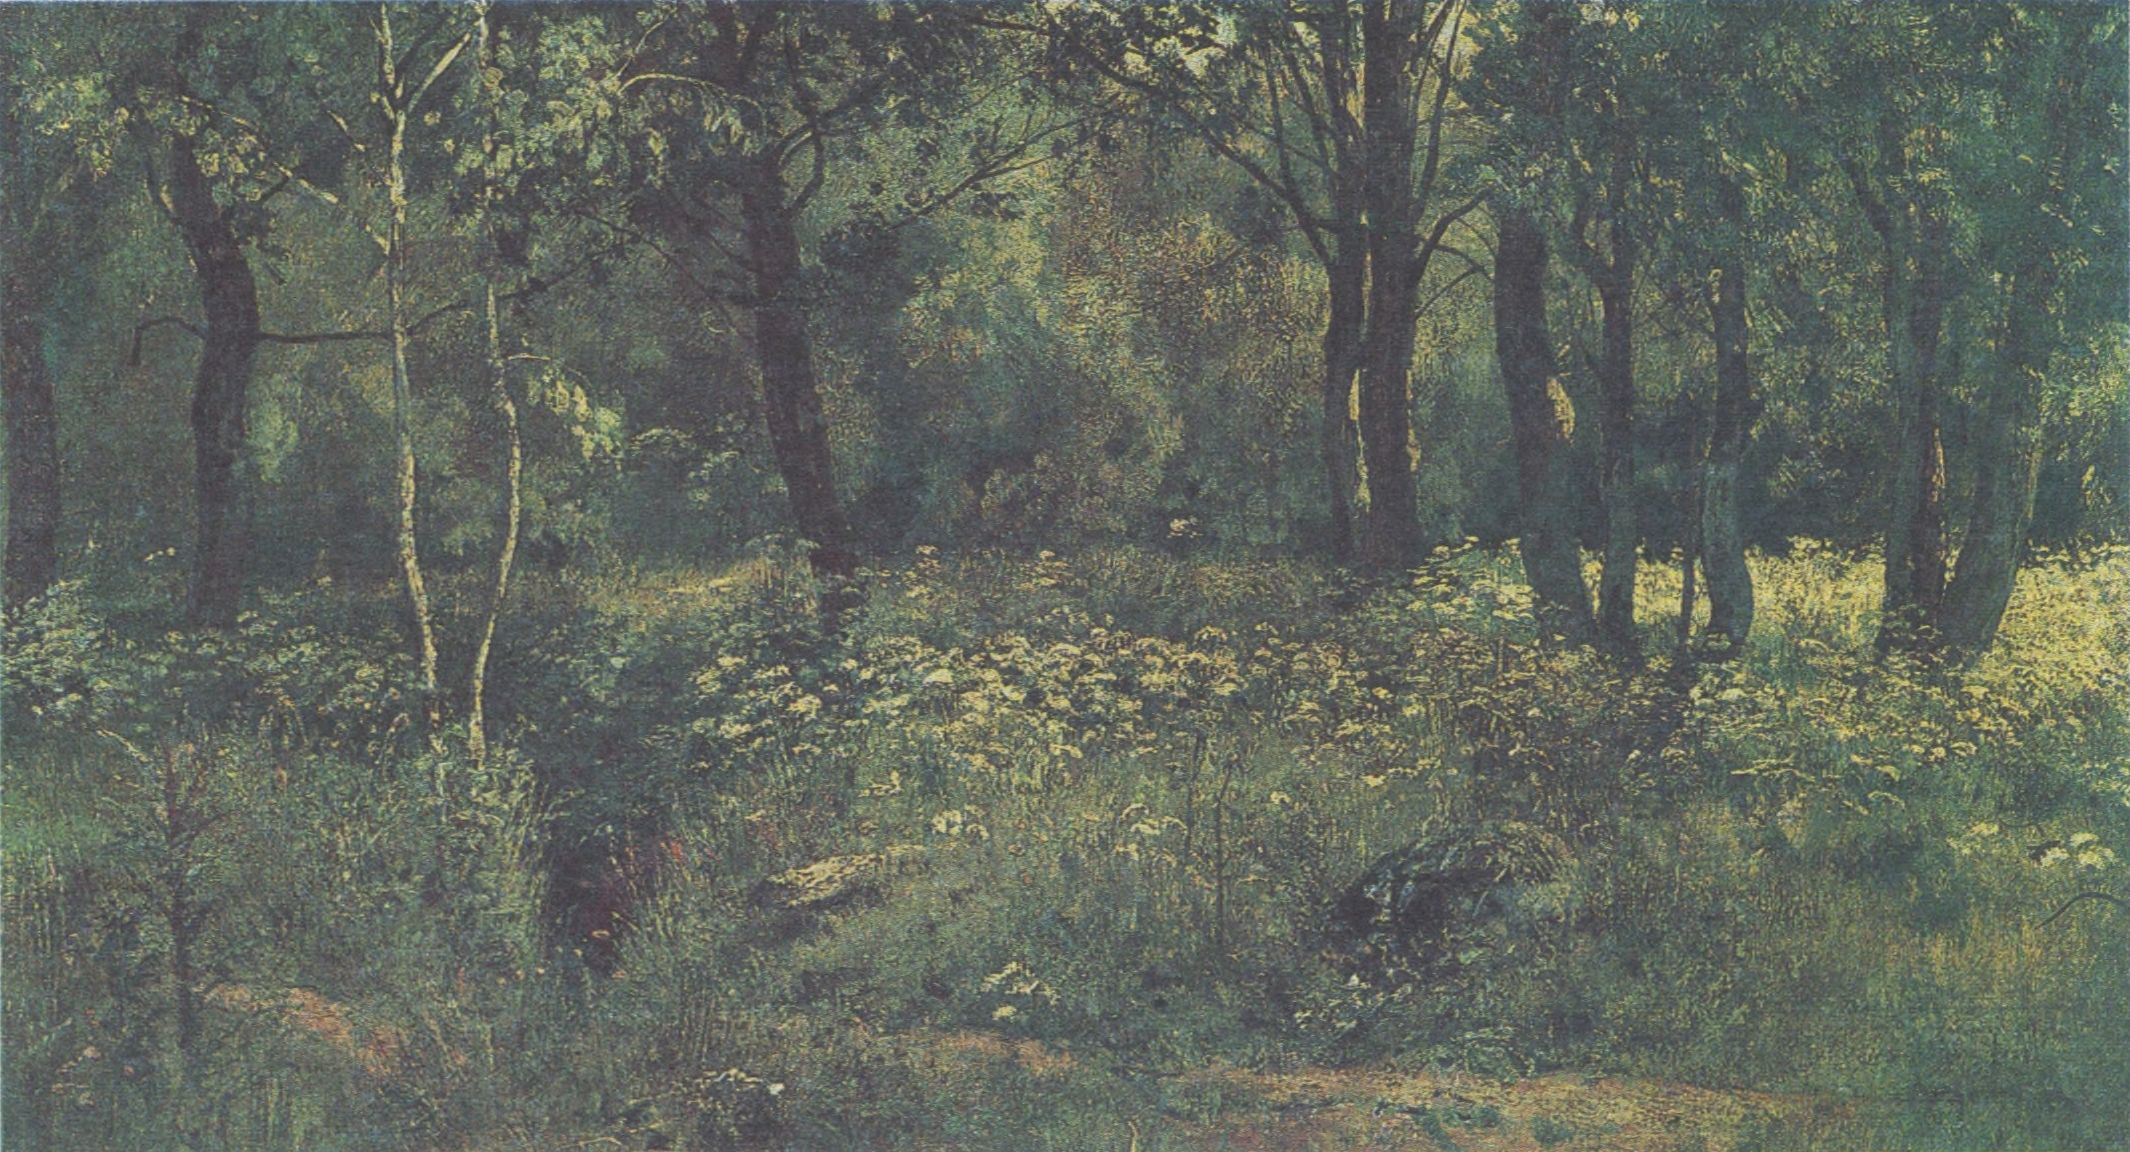 55. Лесная поляна. Этюд. Начало 1890-х гг. (The Glade. Study. Early 1890s)